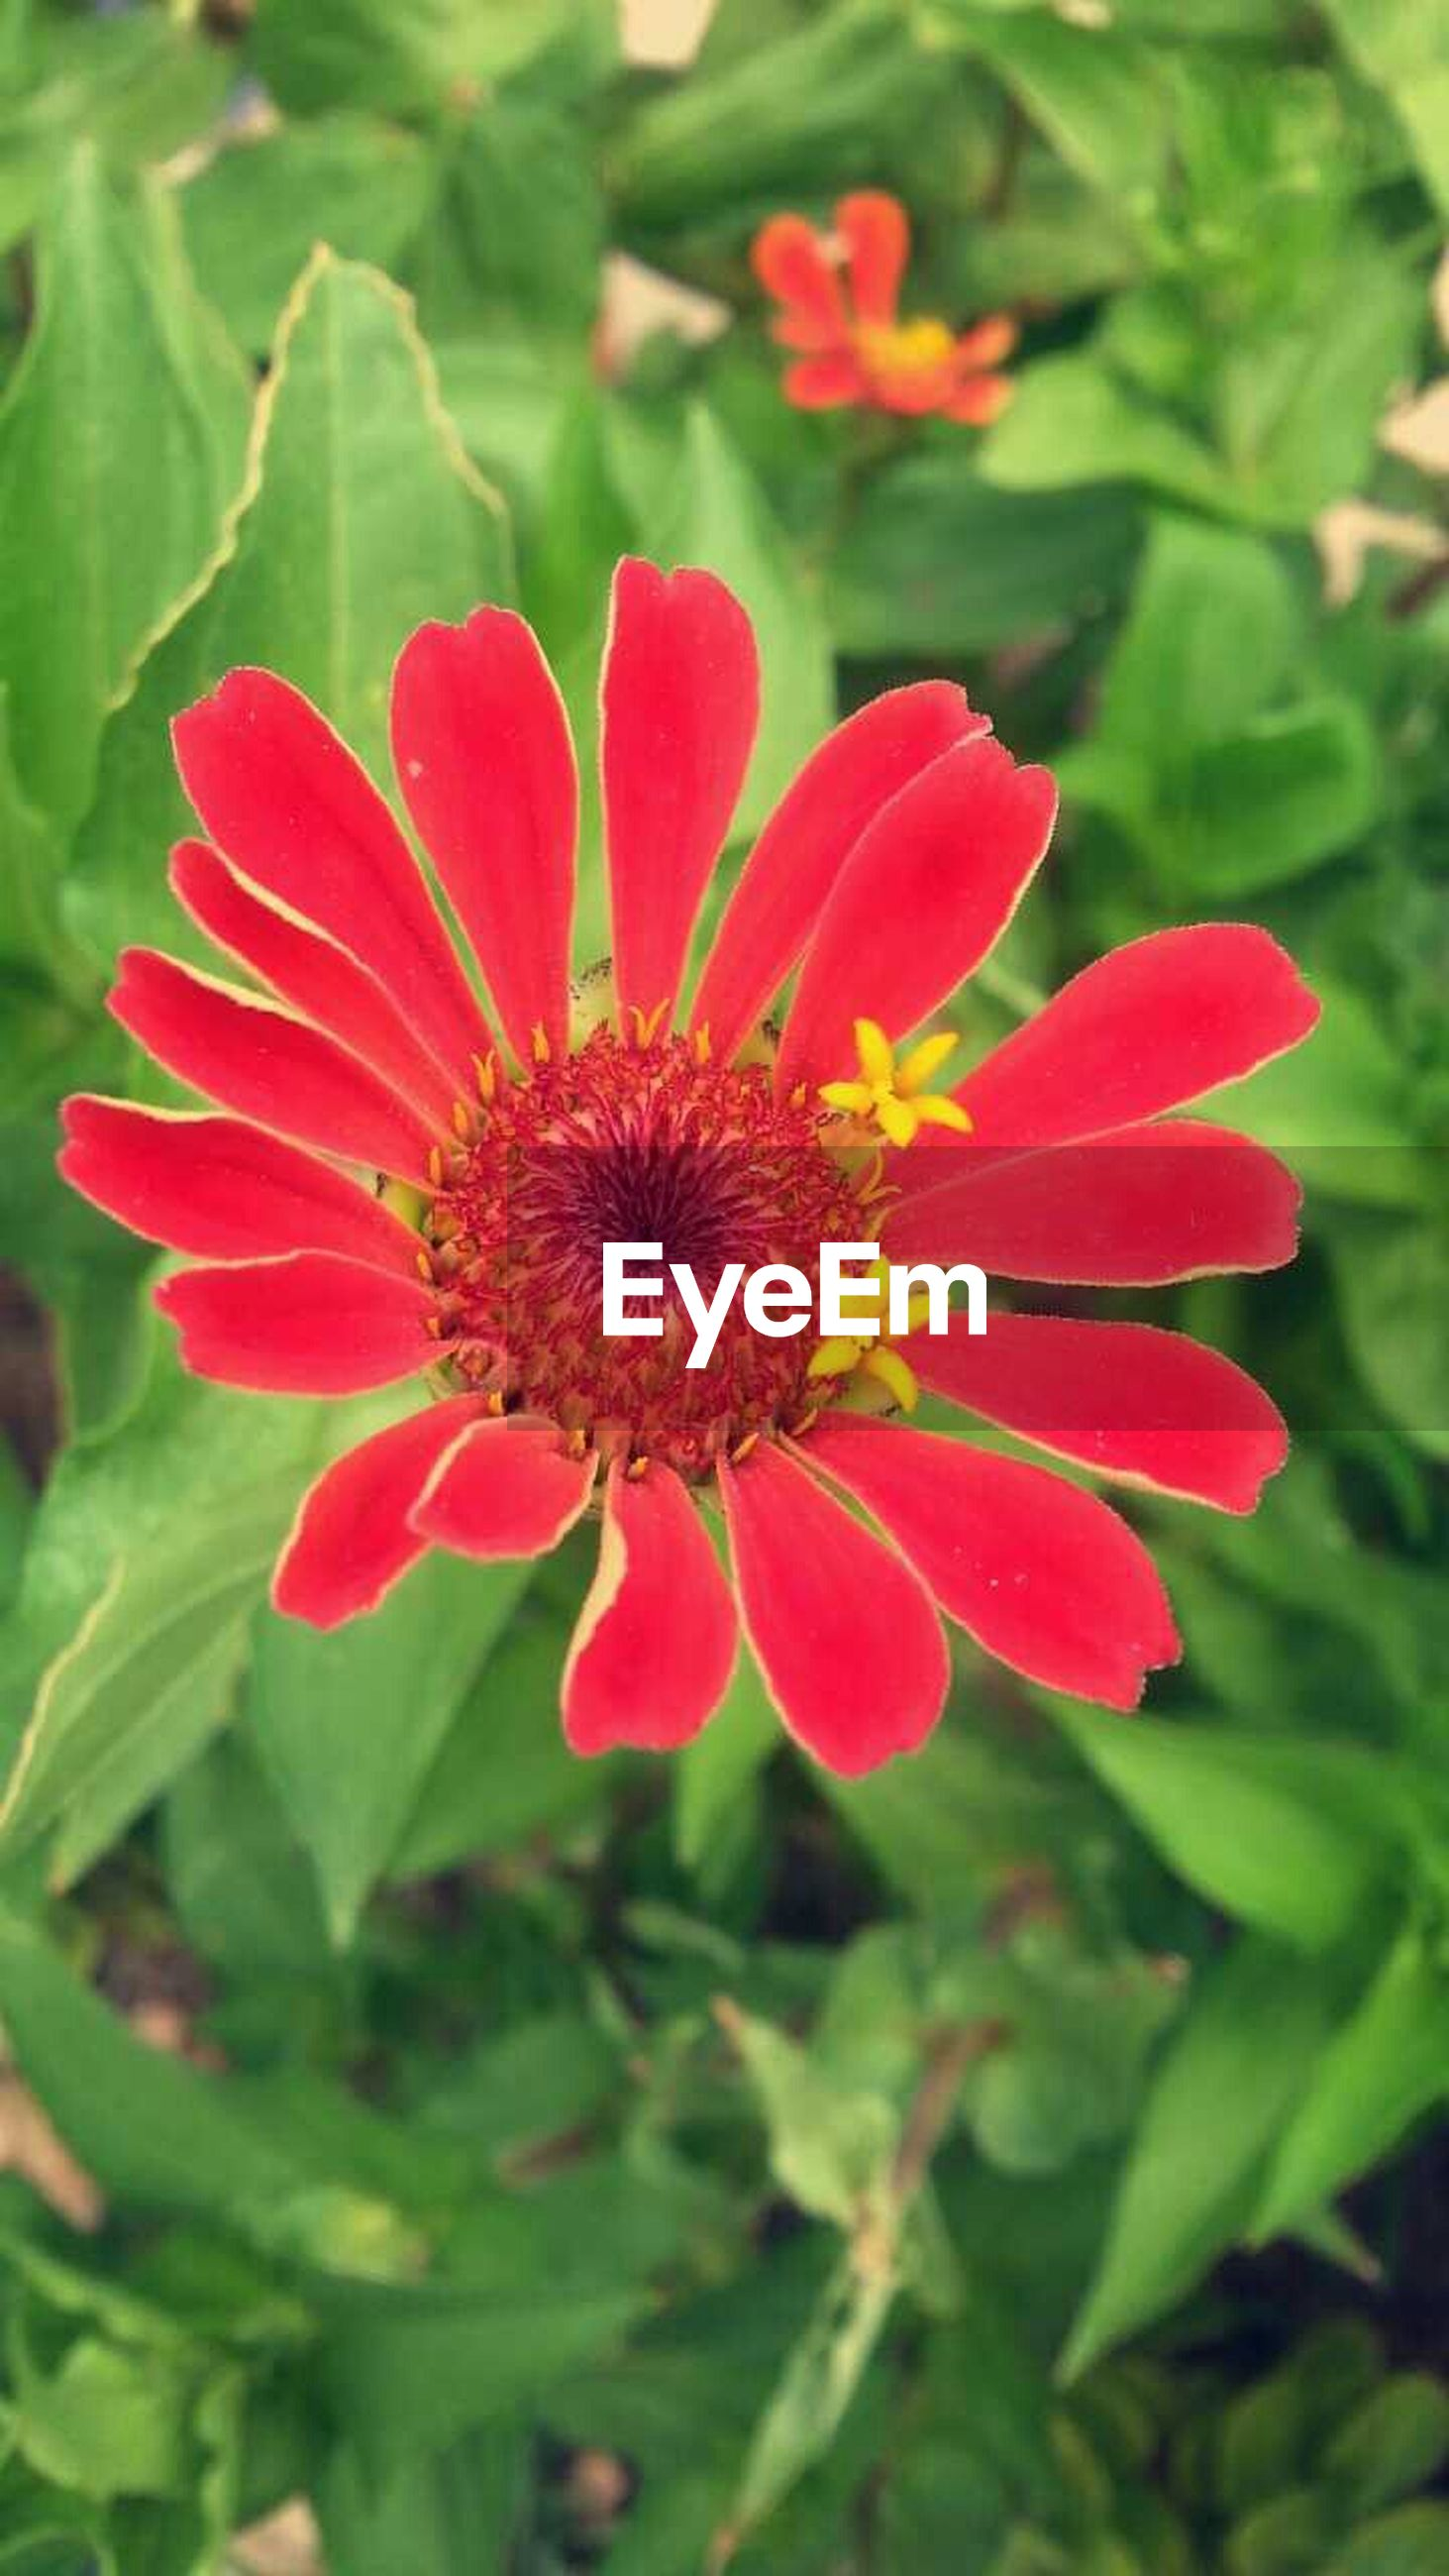 flower, freshness, petal, flower head, fragility, growth, red, beauty in nature, close-up, blooming, plant, focus on foreground, nature, pollen, single flower, in bloom, leaf, stamen, park - man made space, day